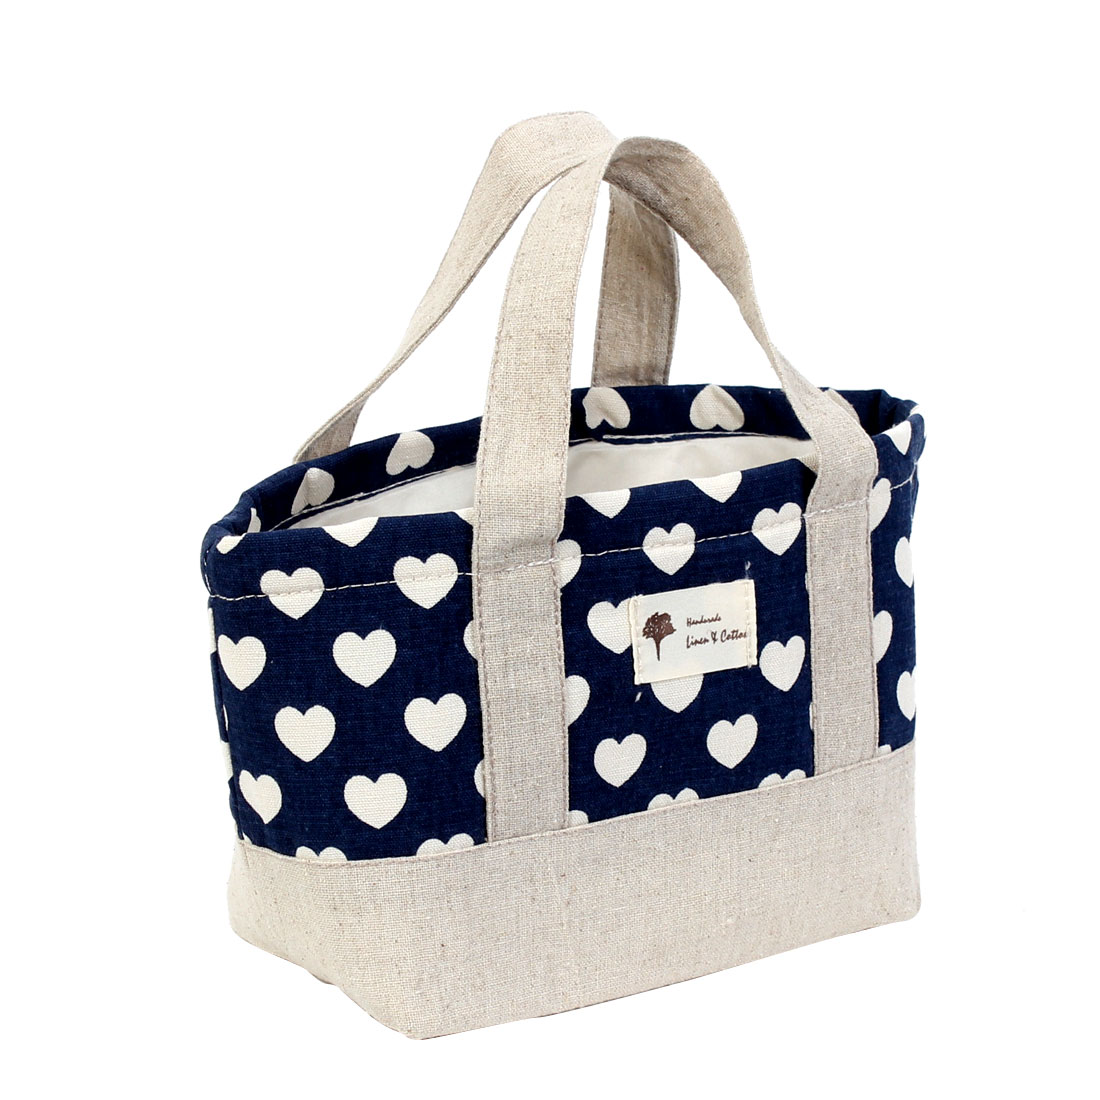 Love Hearts Printed Insulated Cooler Thermal Picnic Lunch Tote Container Storage Bag